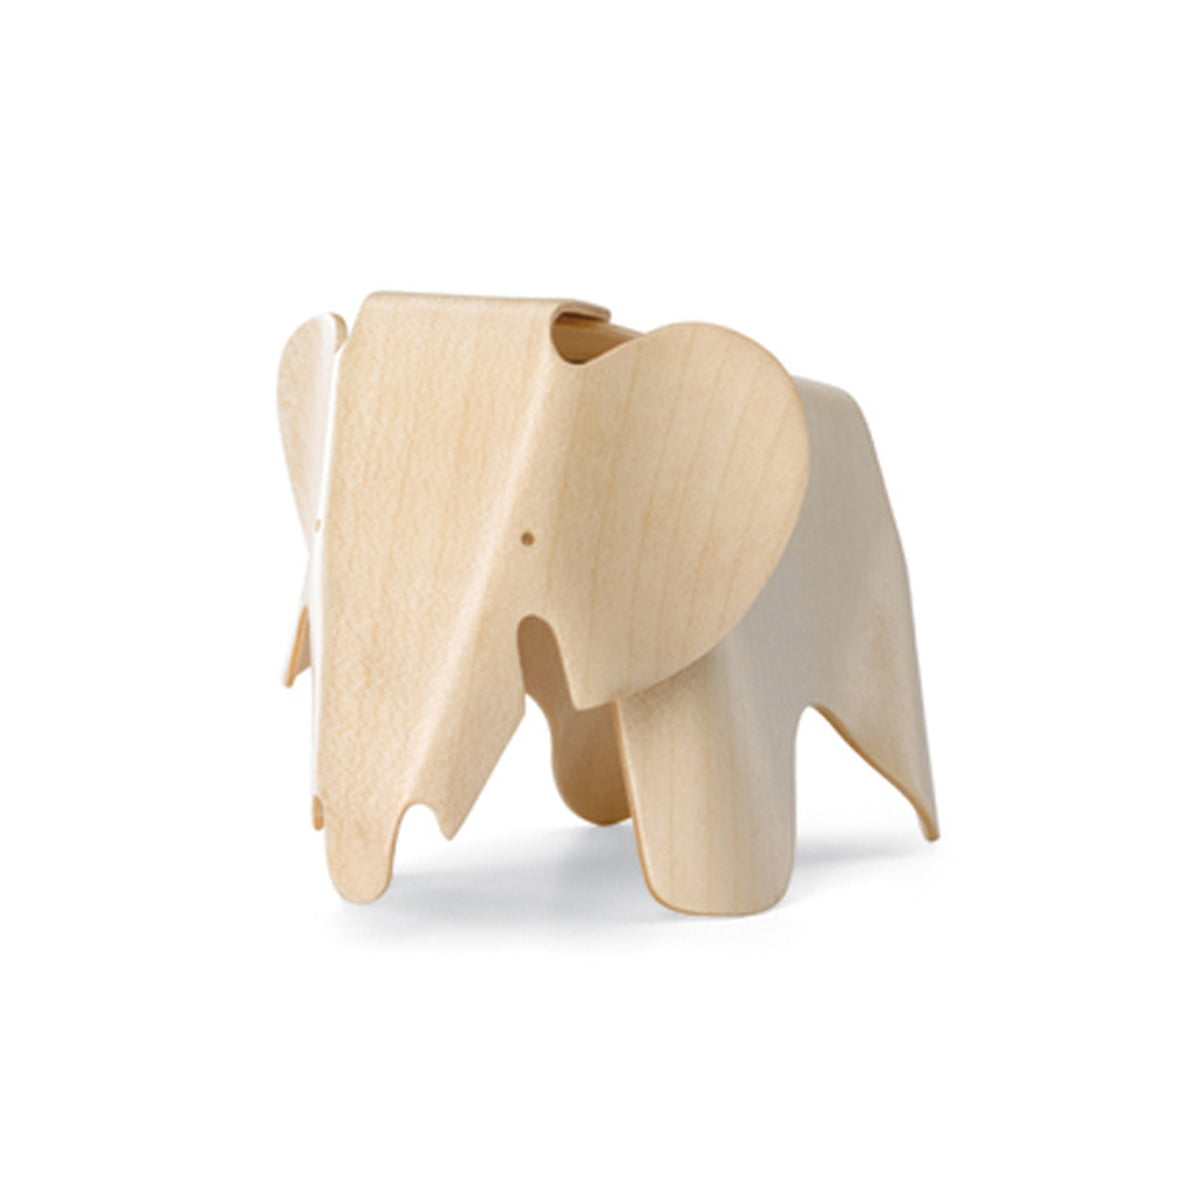 miniature plywood elephant vitra shop. Black Bedroom Furniture Sets. Home Design Ideas